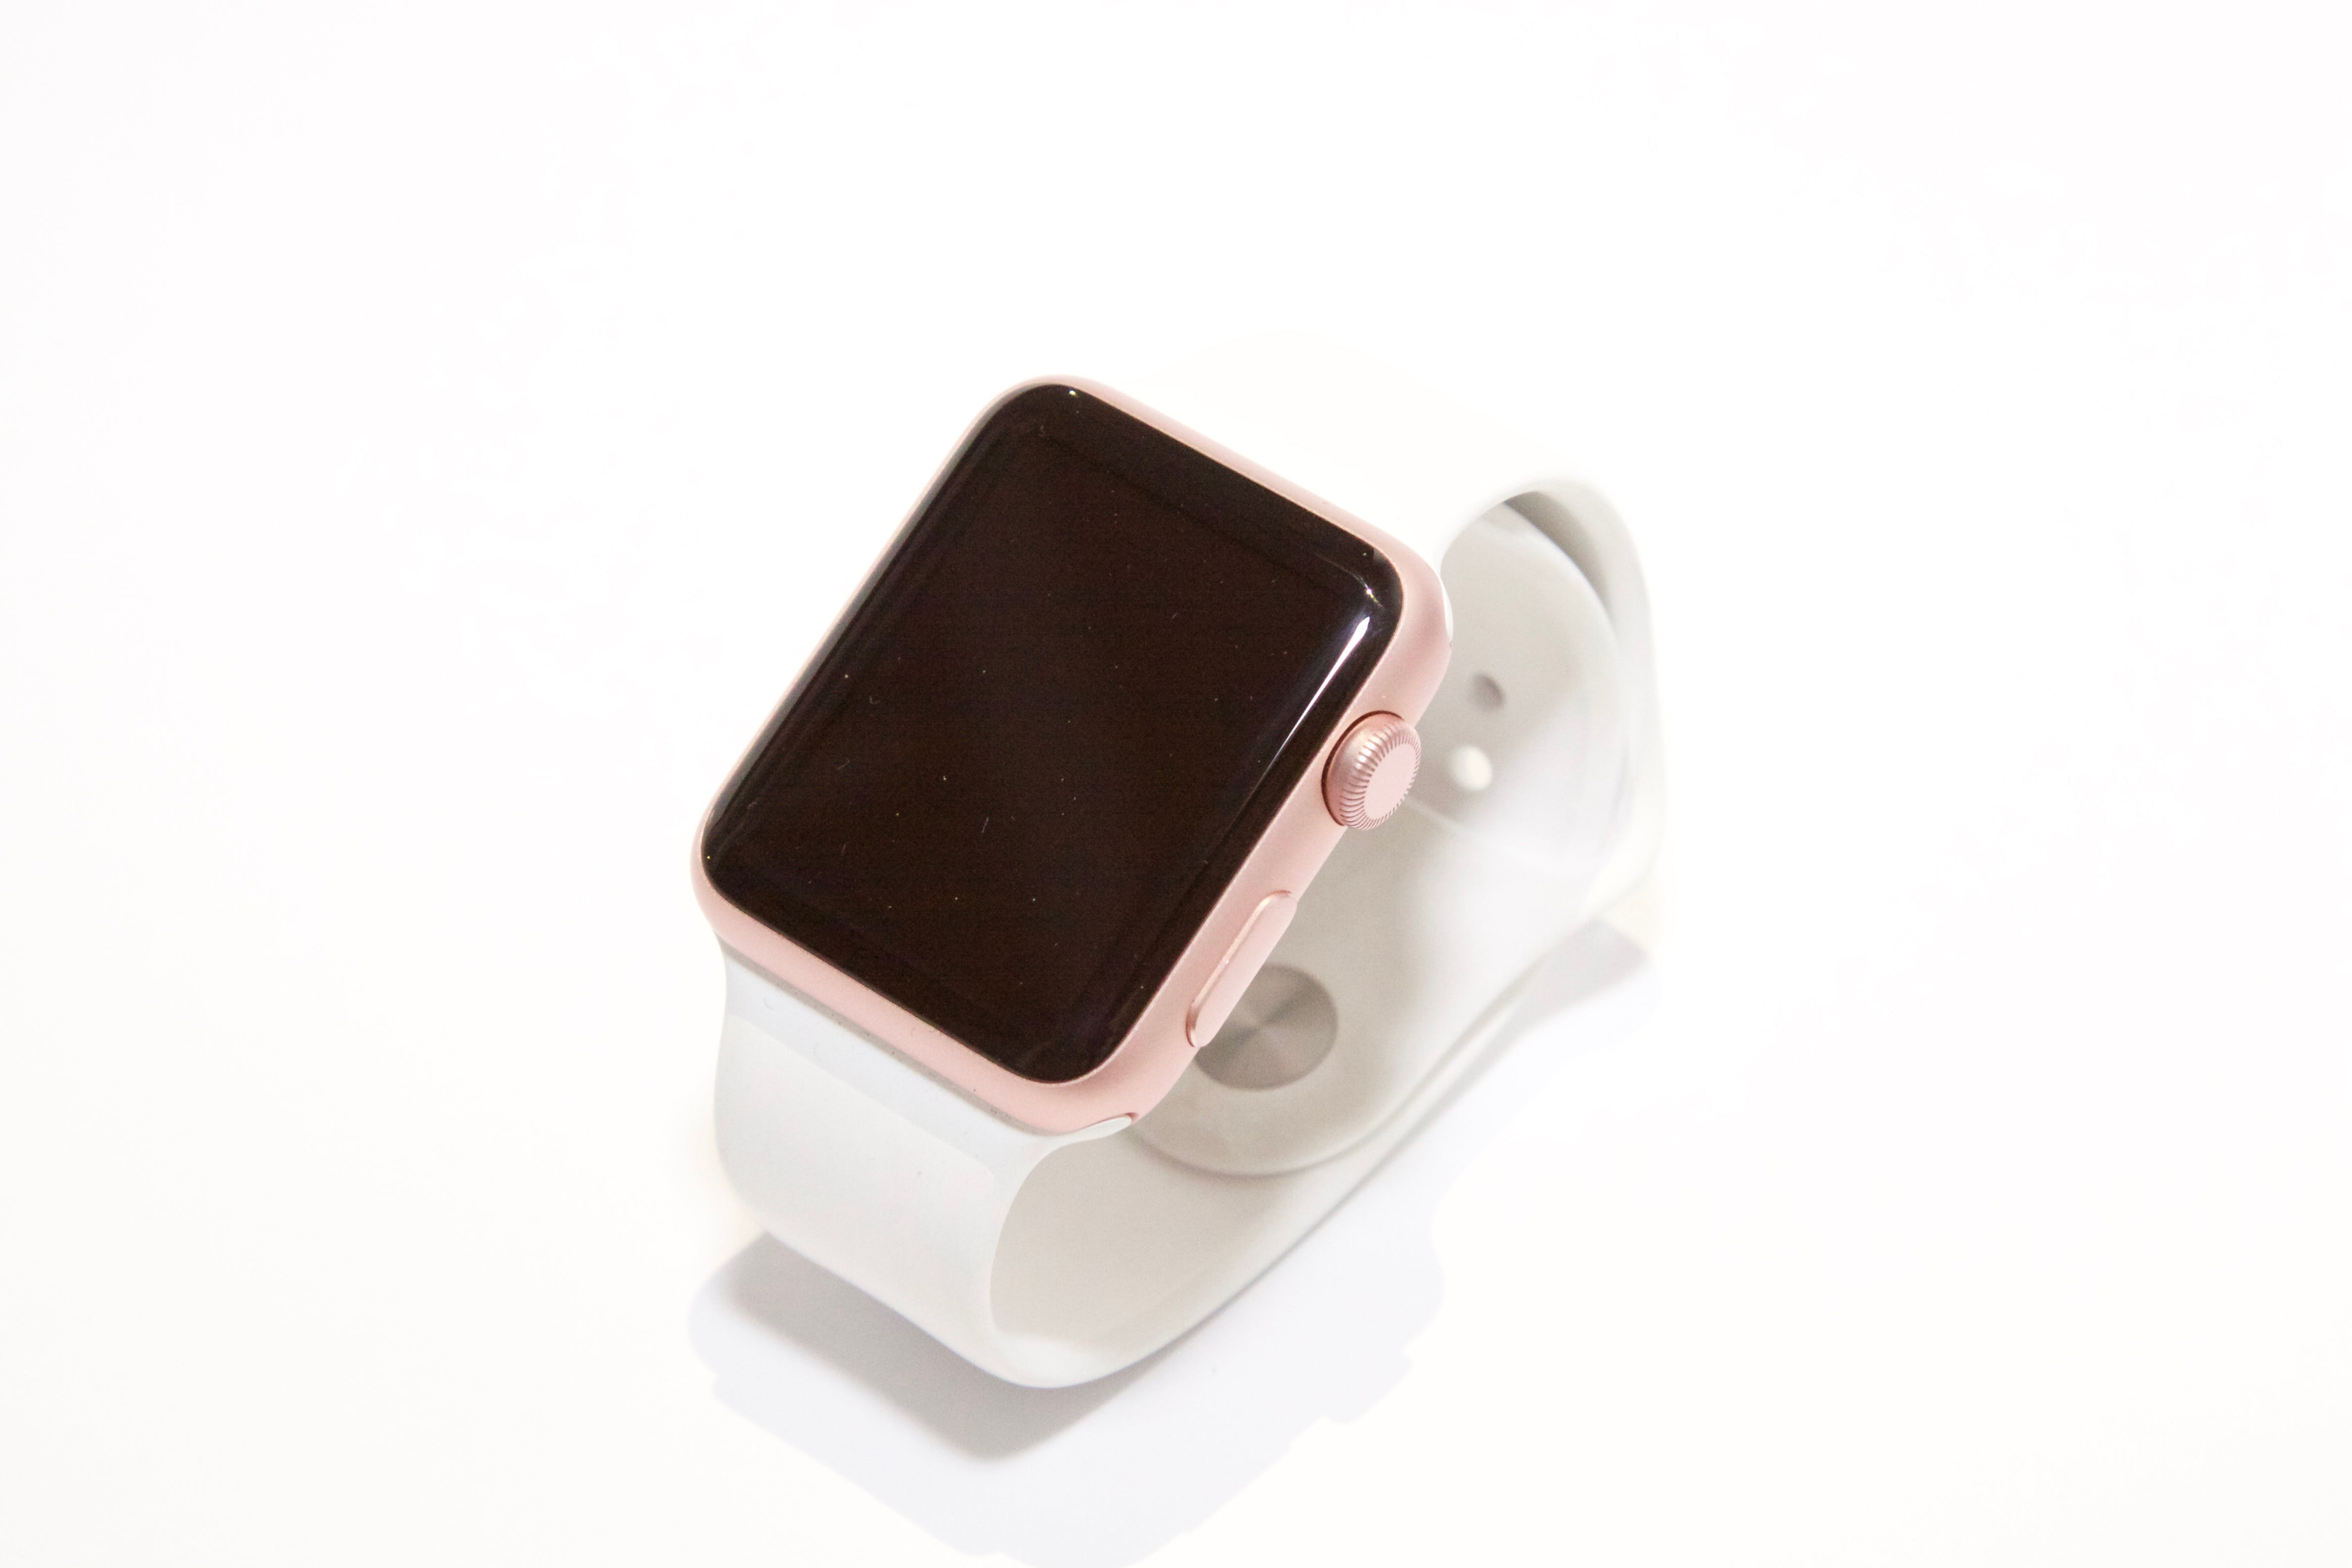 Rose Gold Aluminum Case Apple Watch With White Sports Band